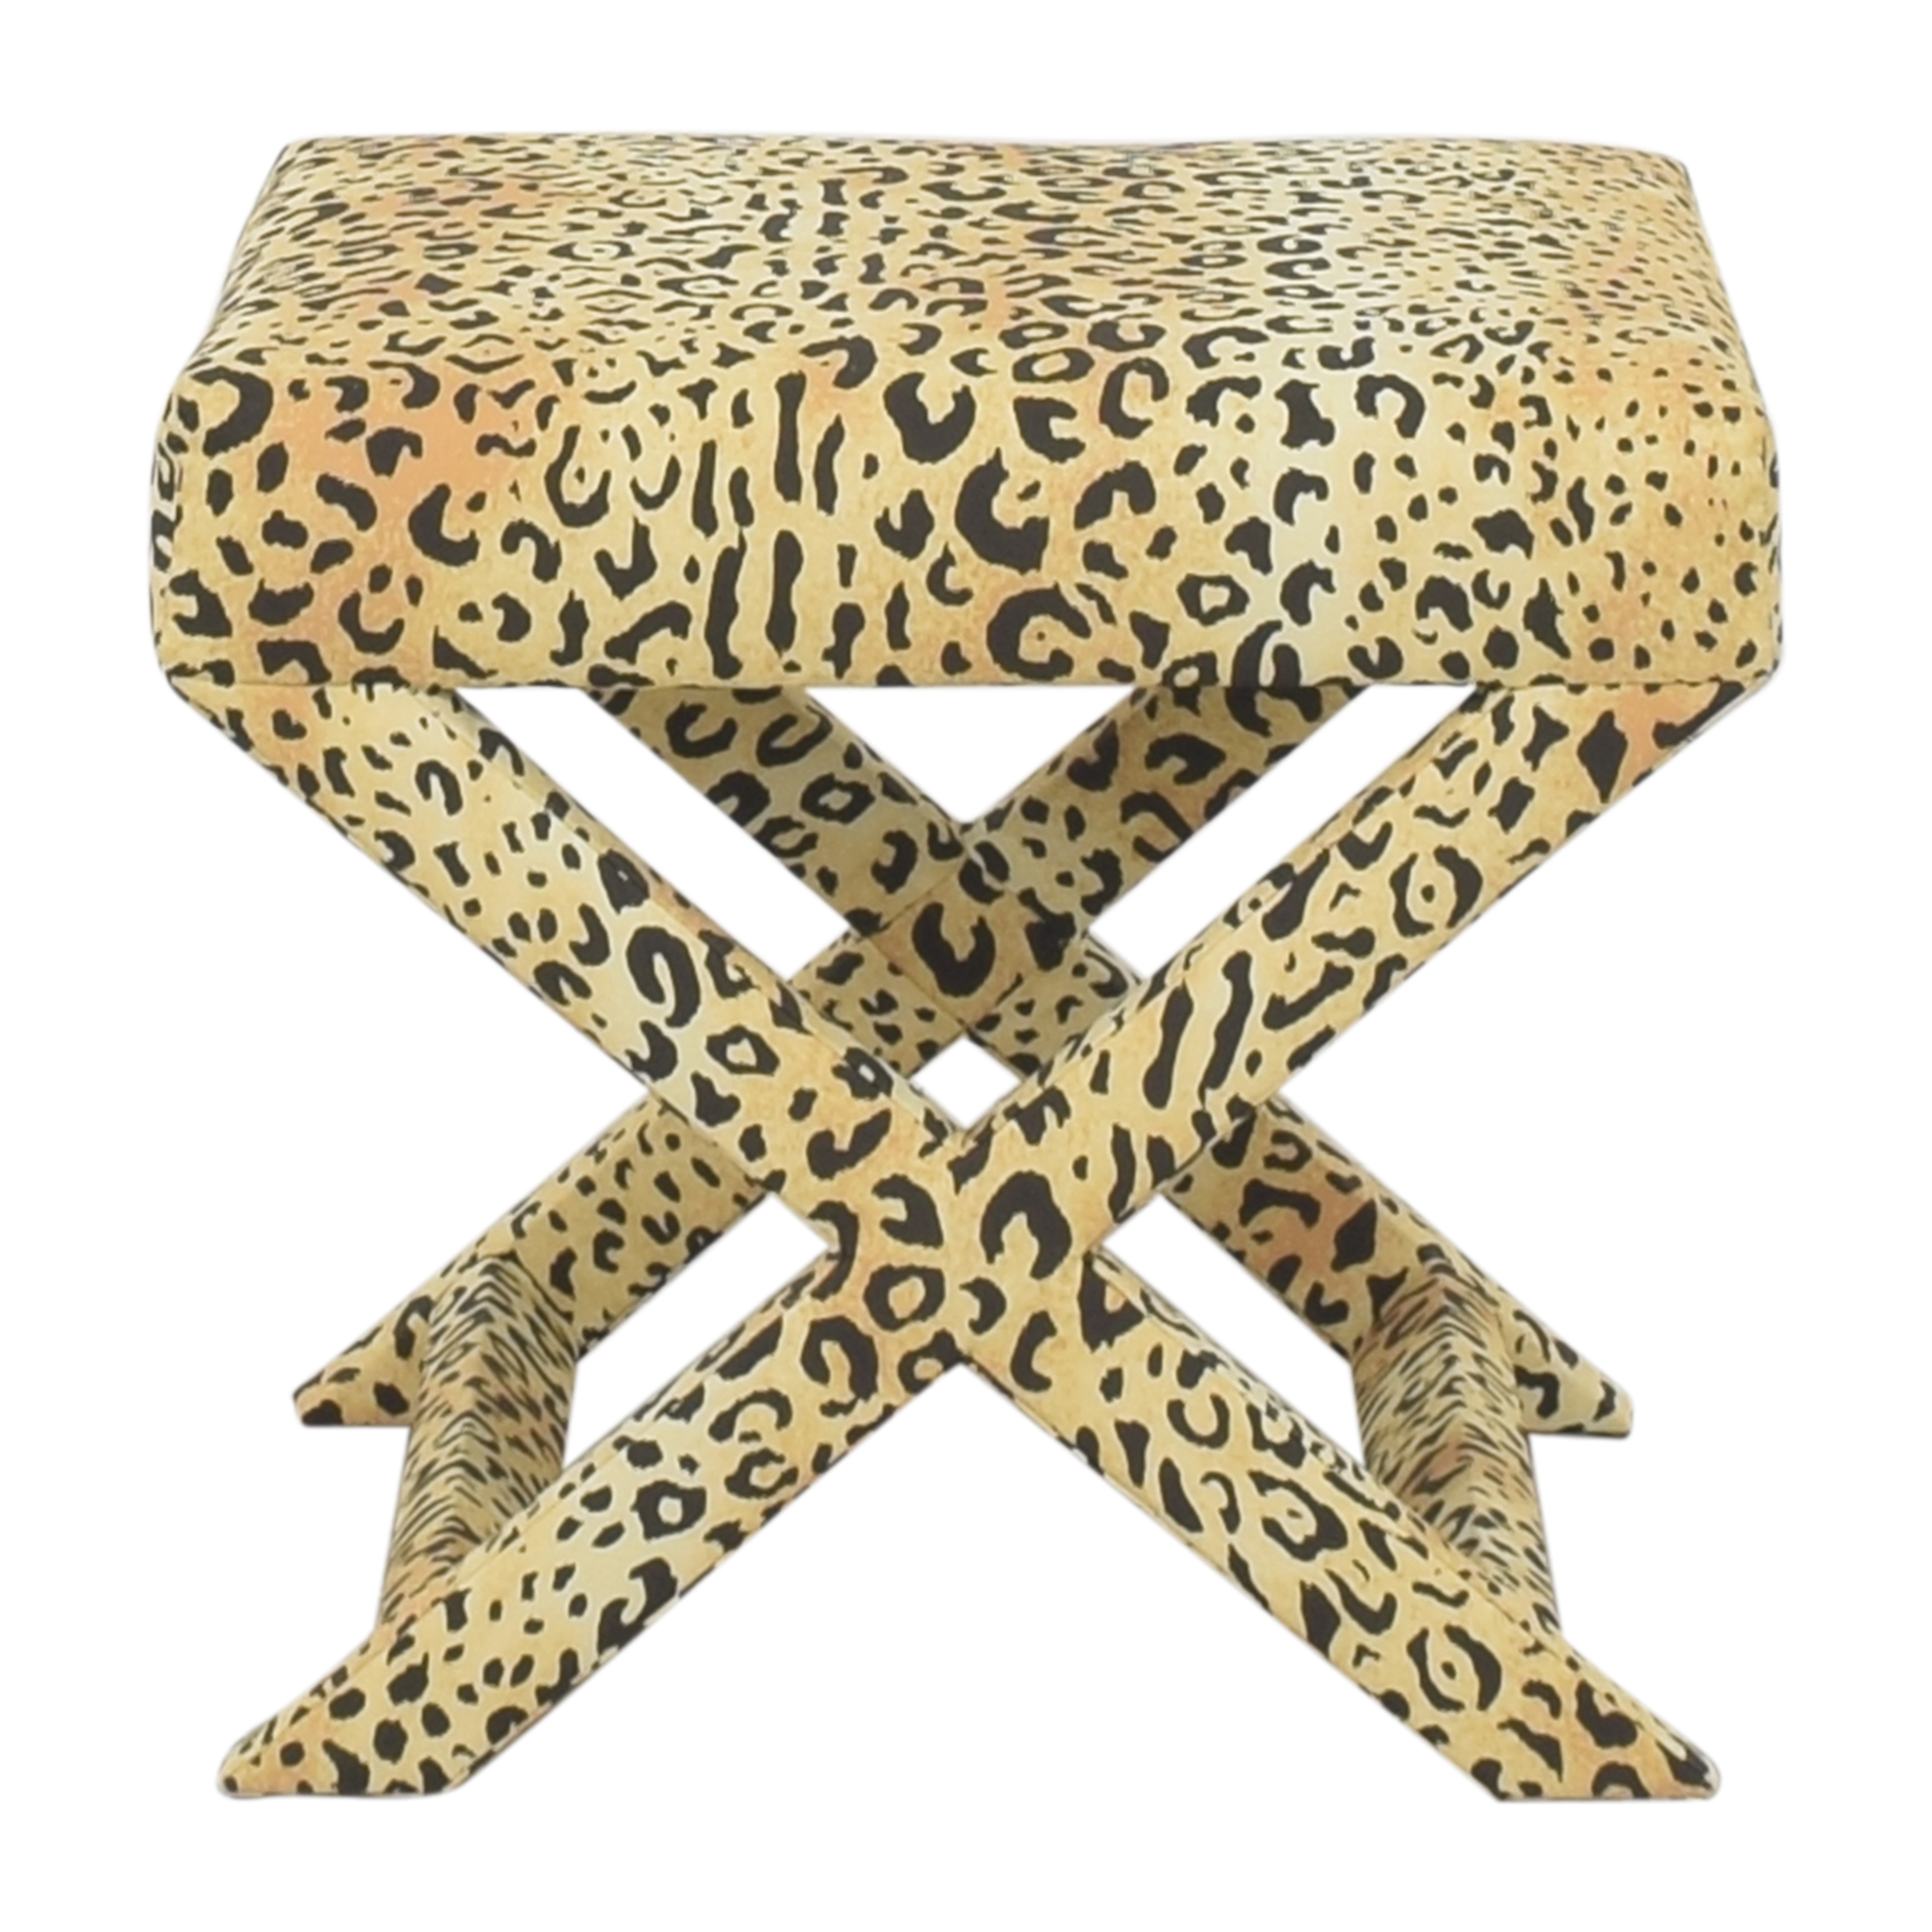 The Inside The Inside Leopard X Bench coupon